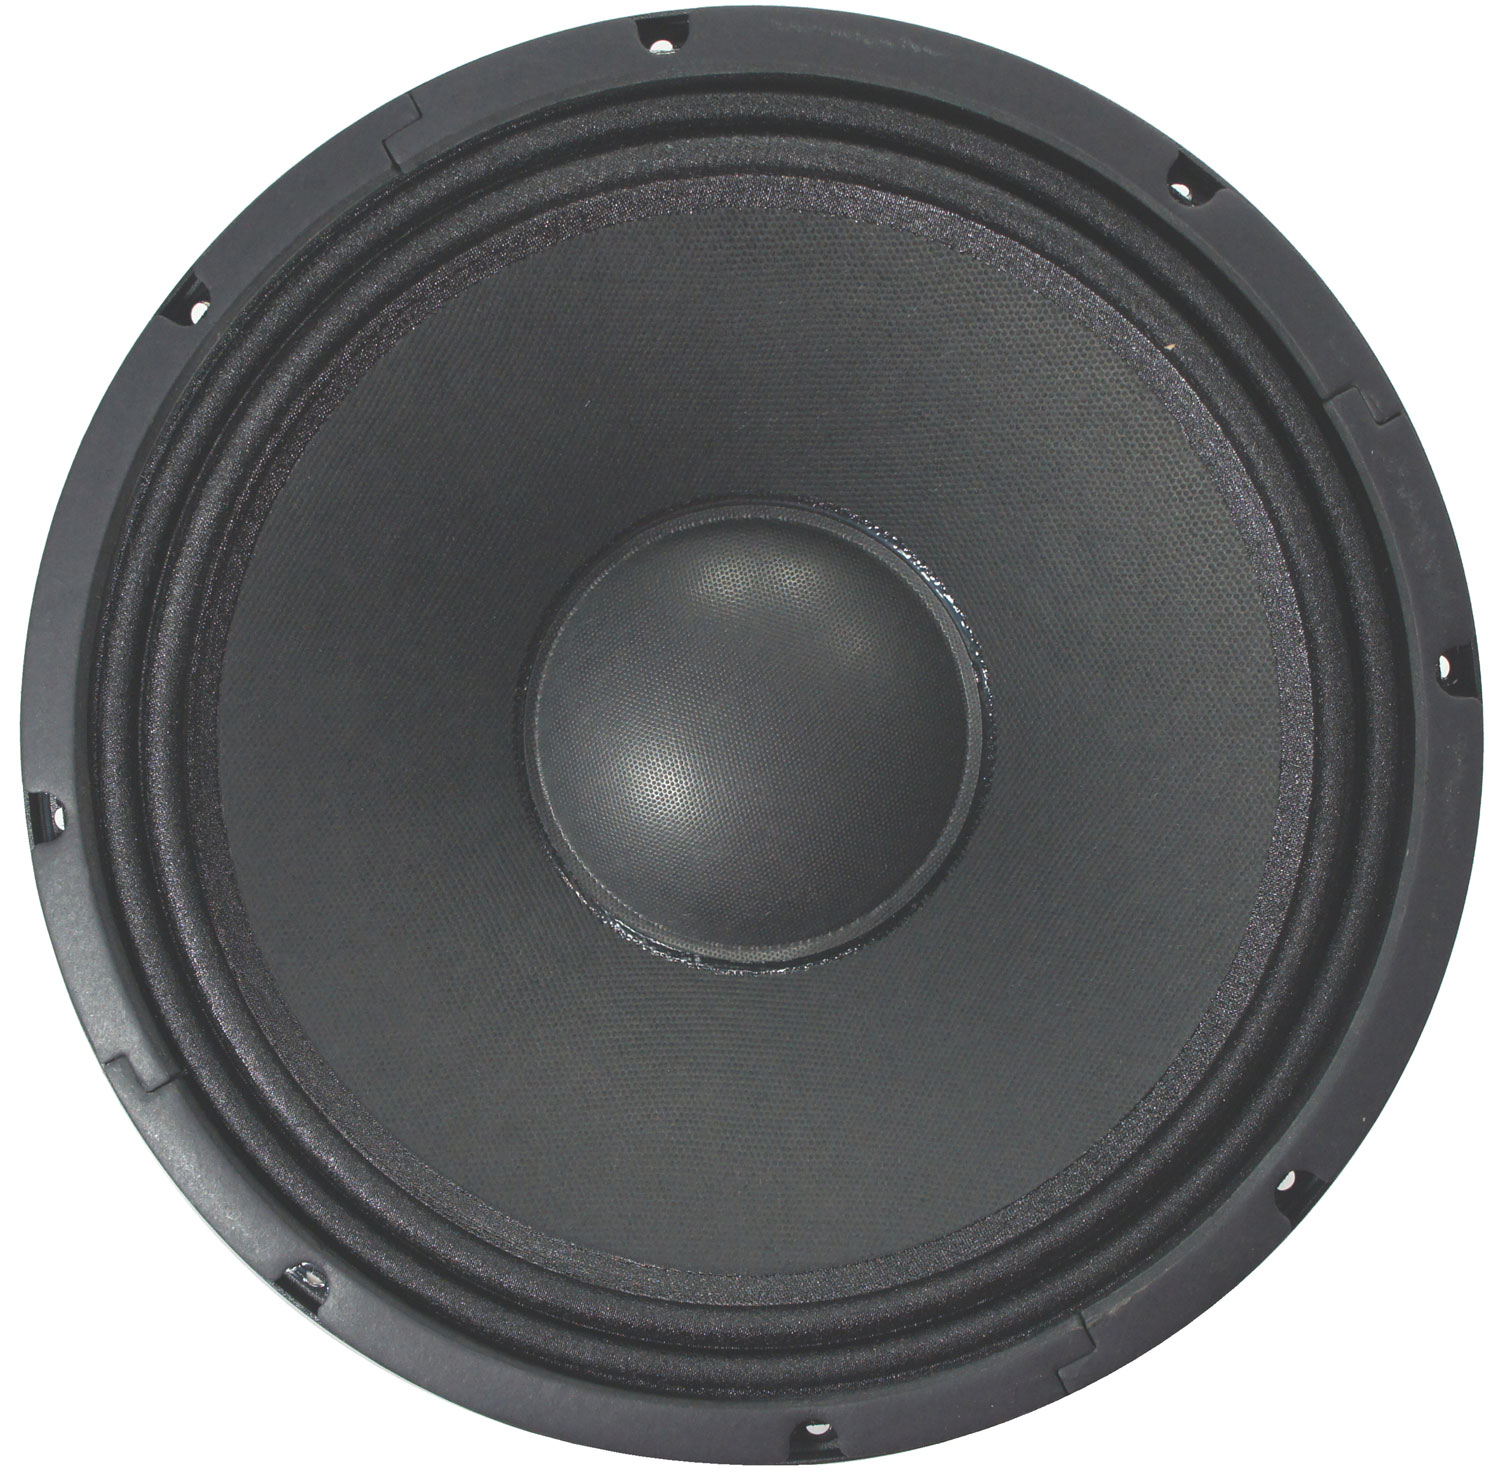 """Harmony HA-P12LS16 Replacement 12"""" Sub Pro PA 800W Subwoofer / Speaker 16 Ohm Woofer - 90oz Magnet"""